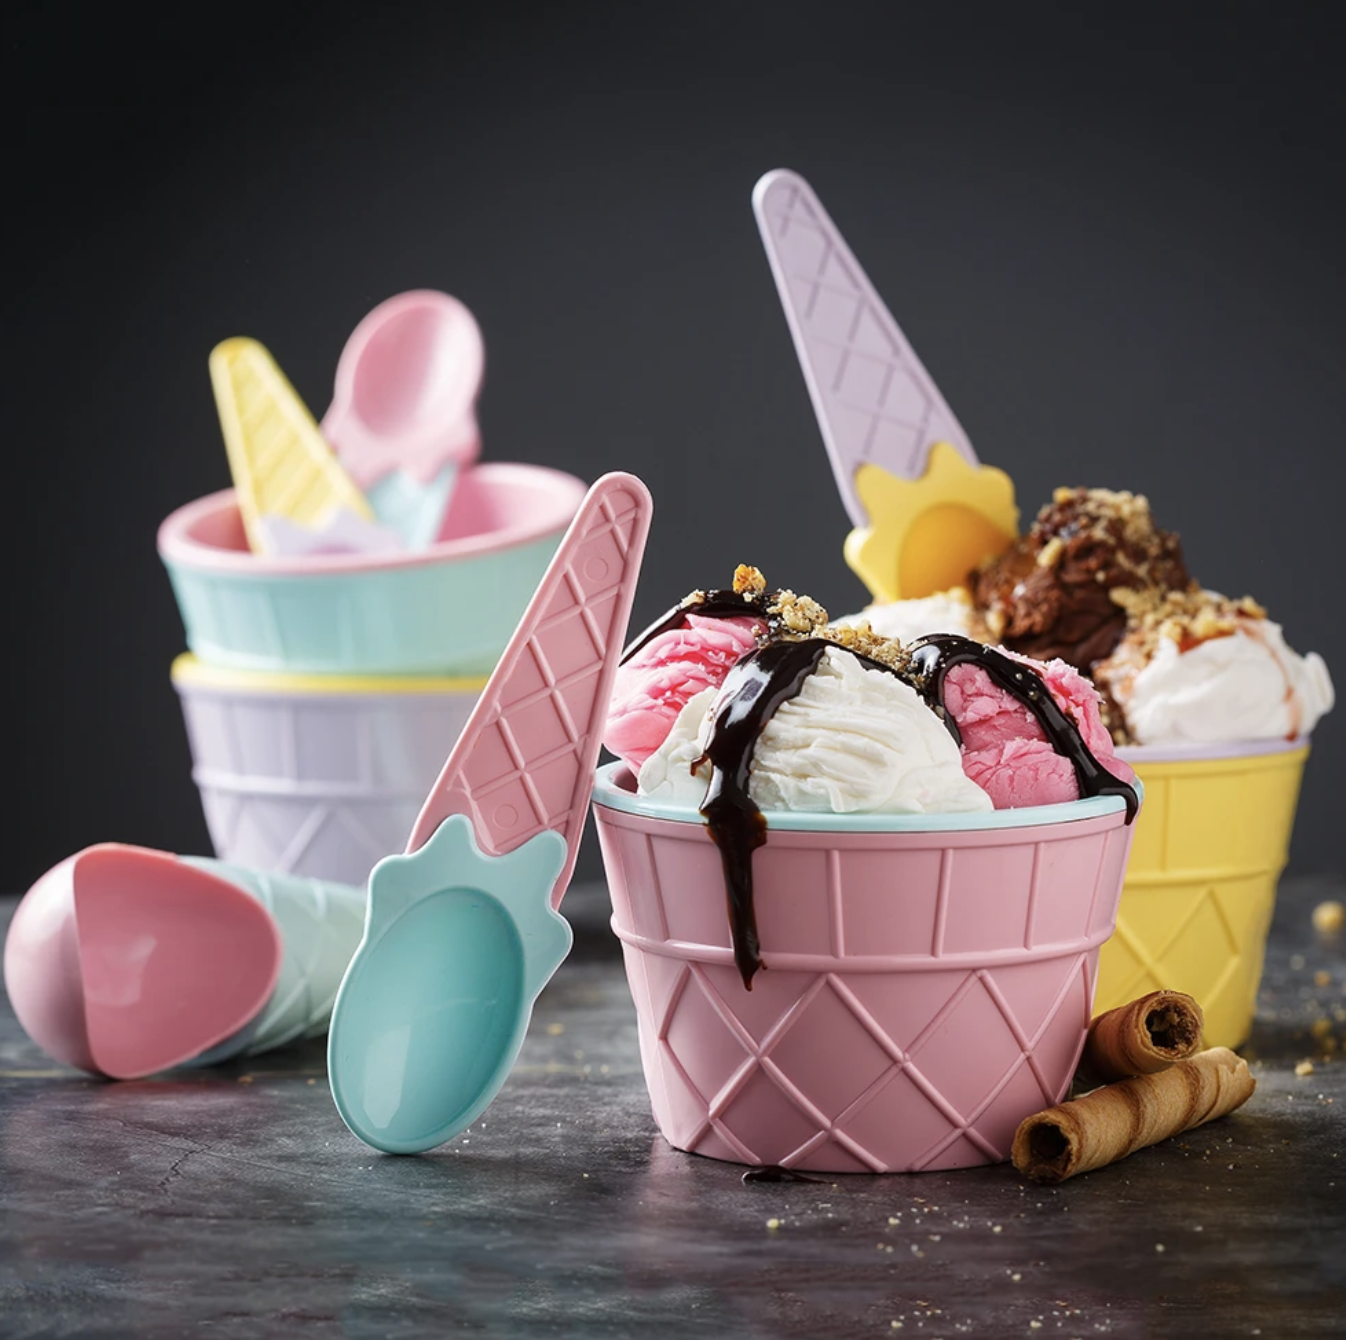 the reusable ice cream cup set with several scoops of ice cream in two of the cups